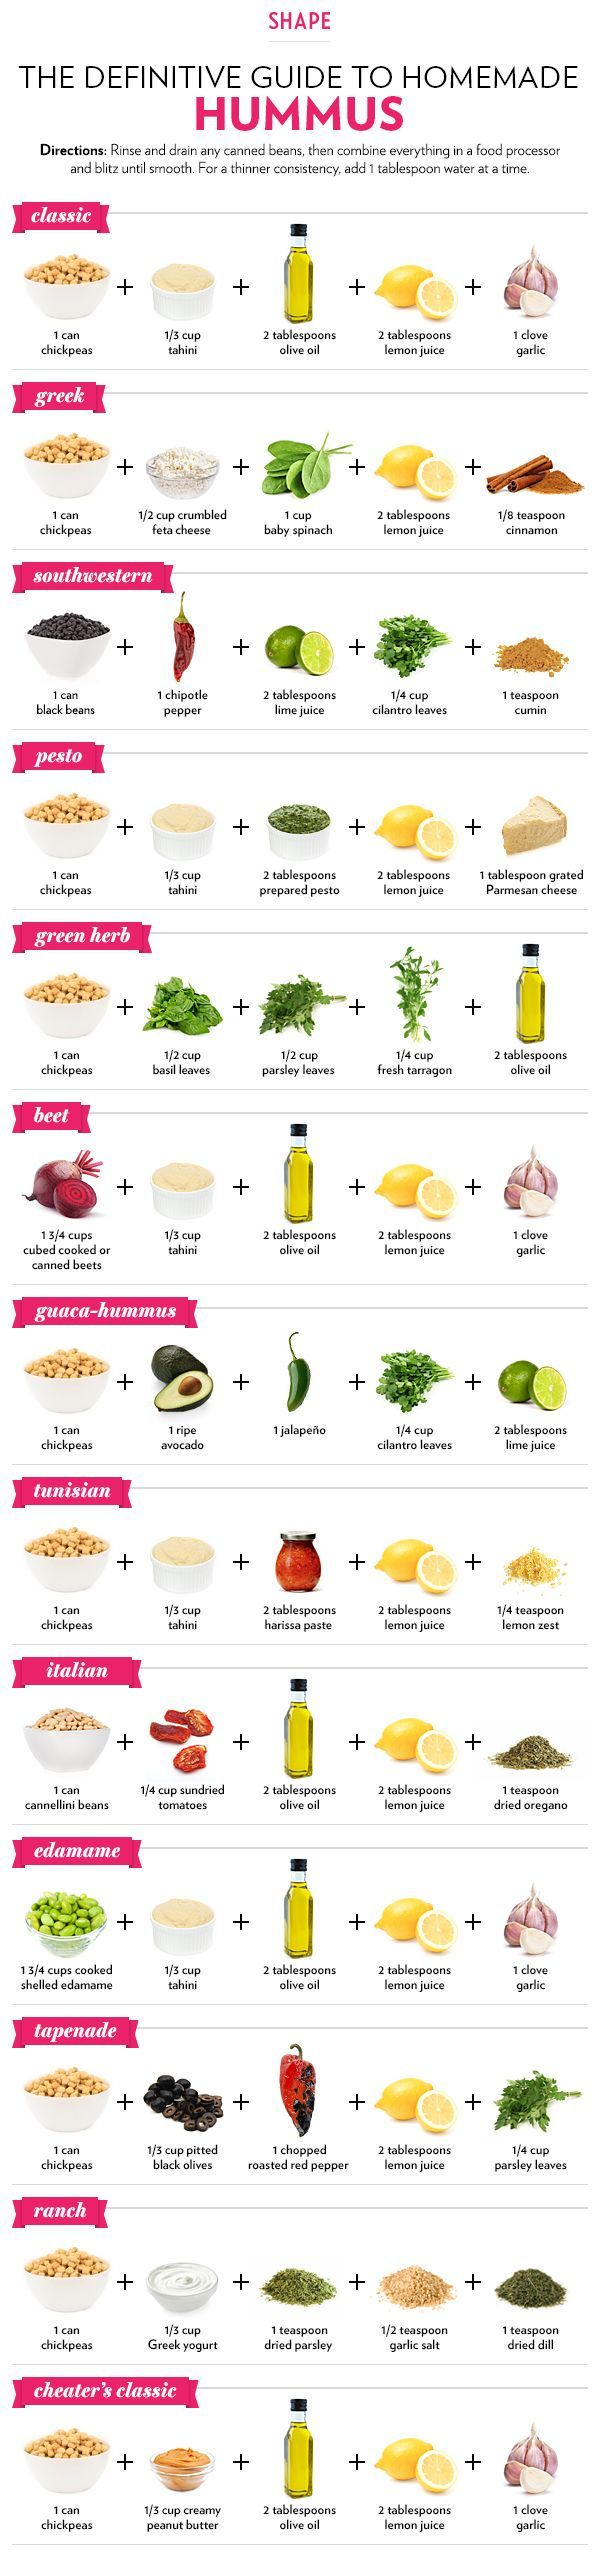 13 recipes for hummus. However, don't ever add cinnamon to your hummus or I'll punch you in the throat.